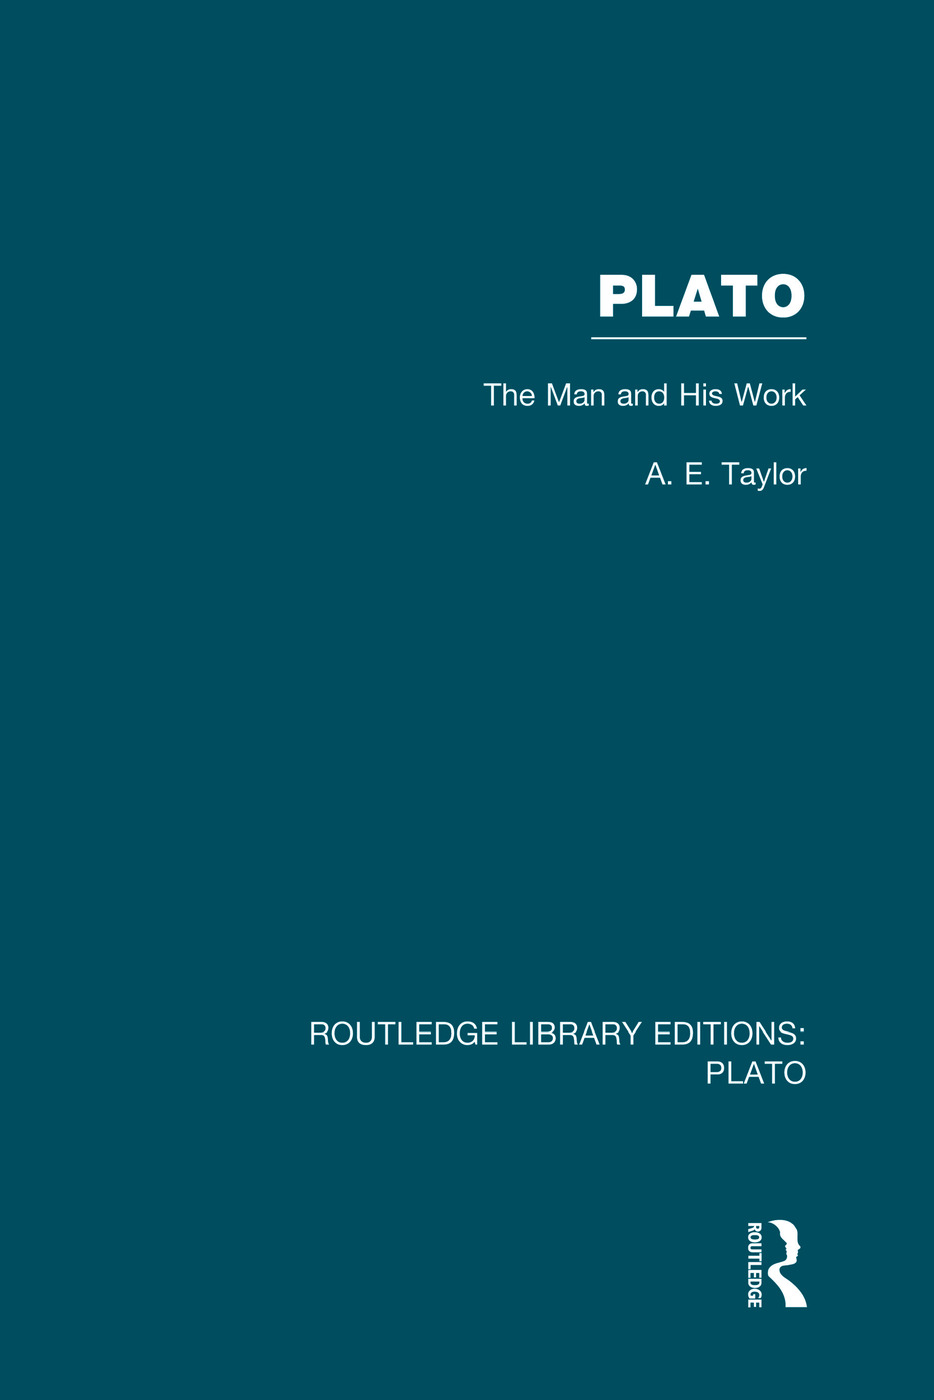 Plato: The Man and His Work (RLE: Plato) book cover